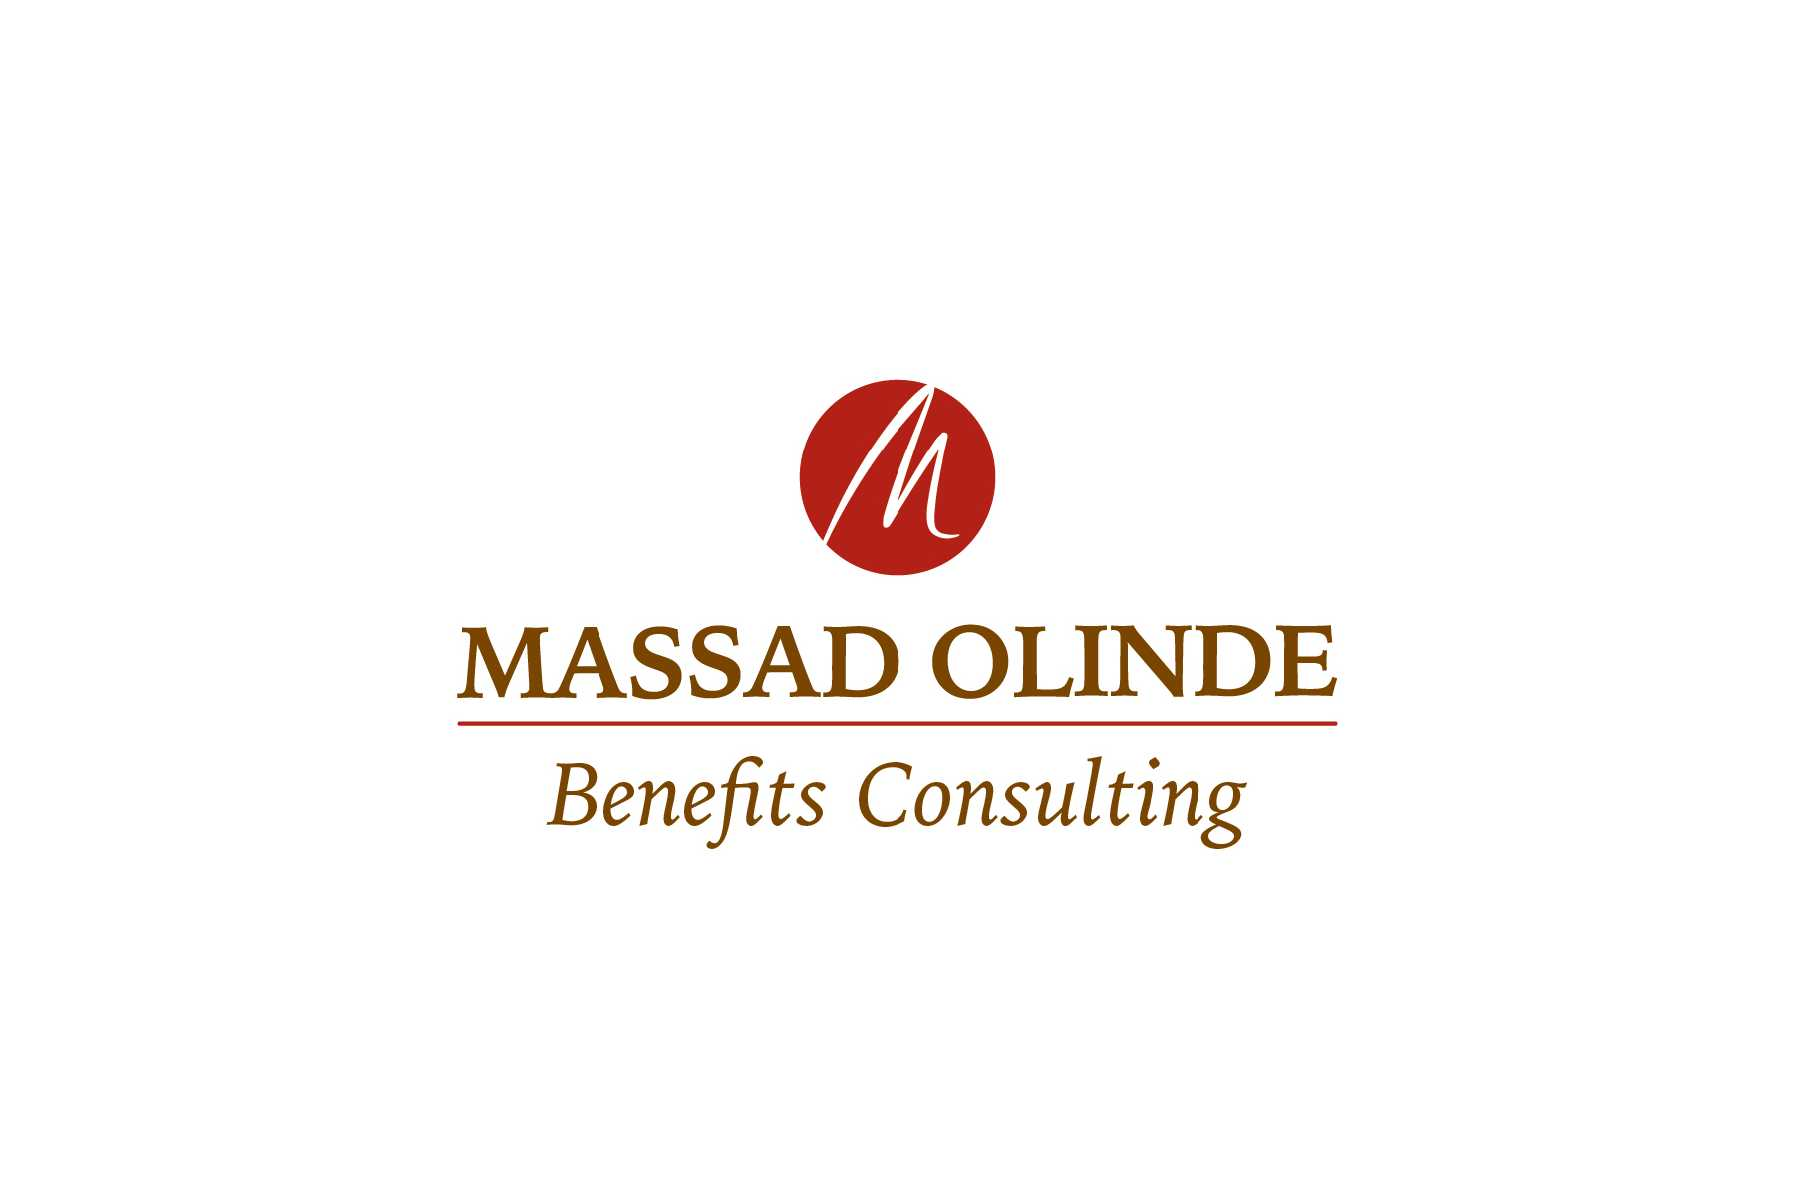 Massad Olinde Benefits Consulting - The employee benefits broker and group health insurance advisor in Baton Rouge